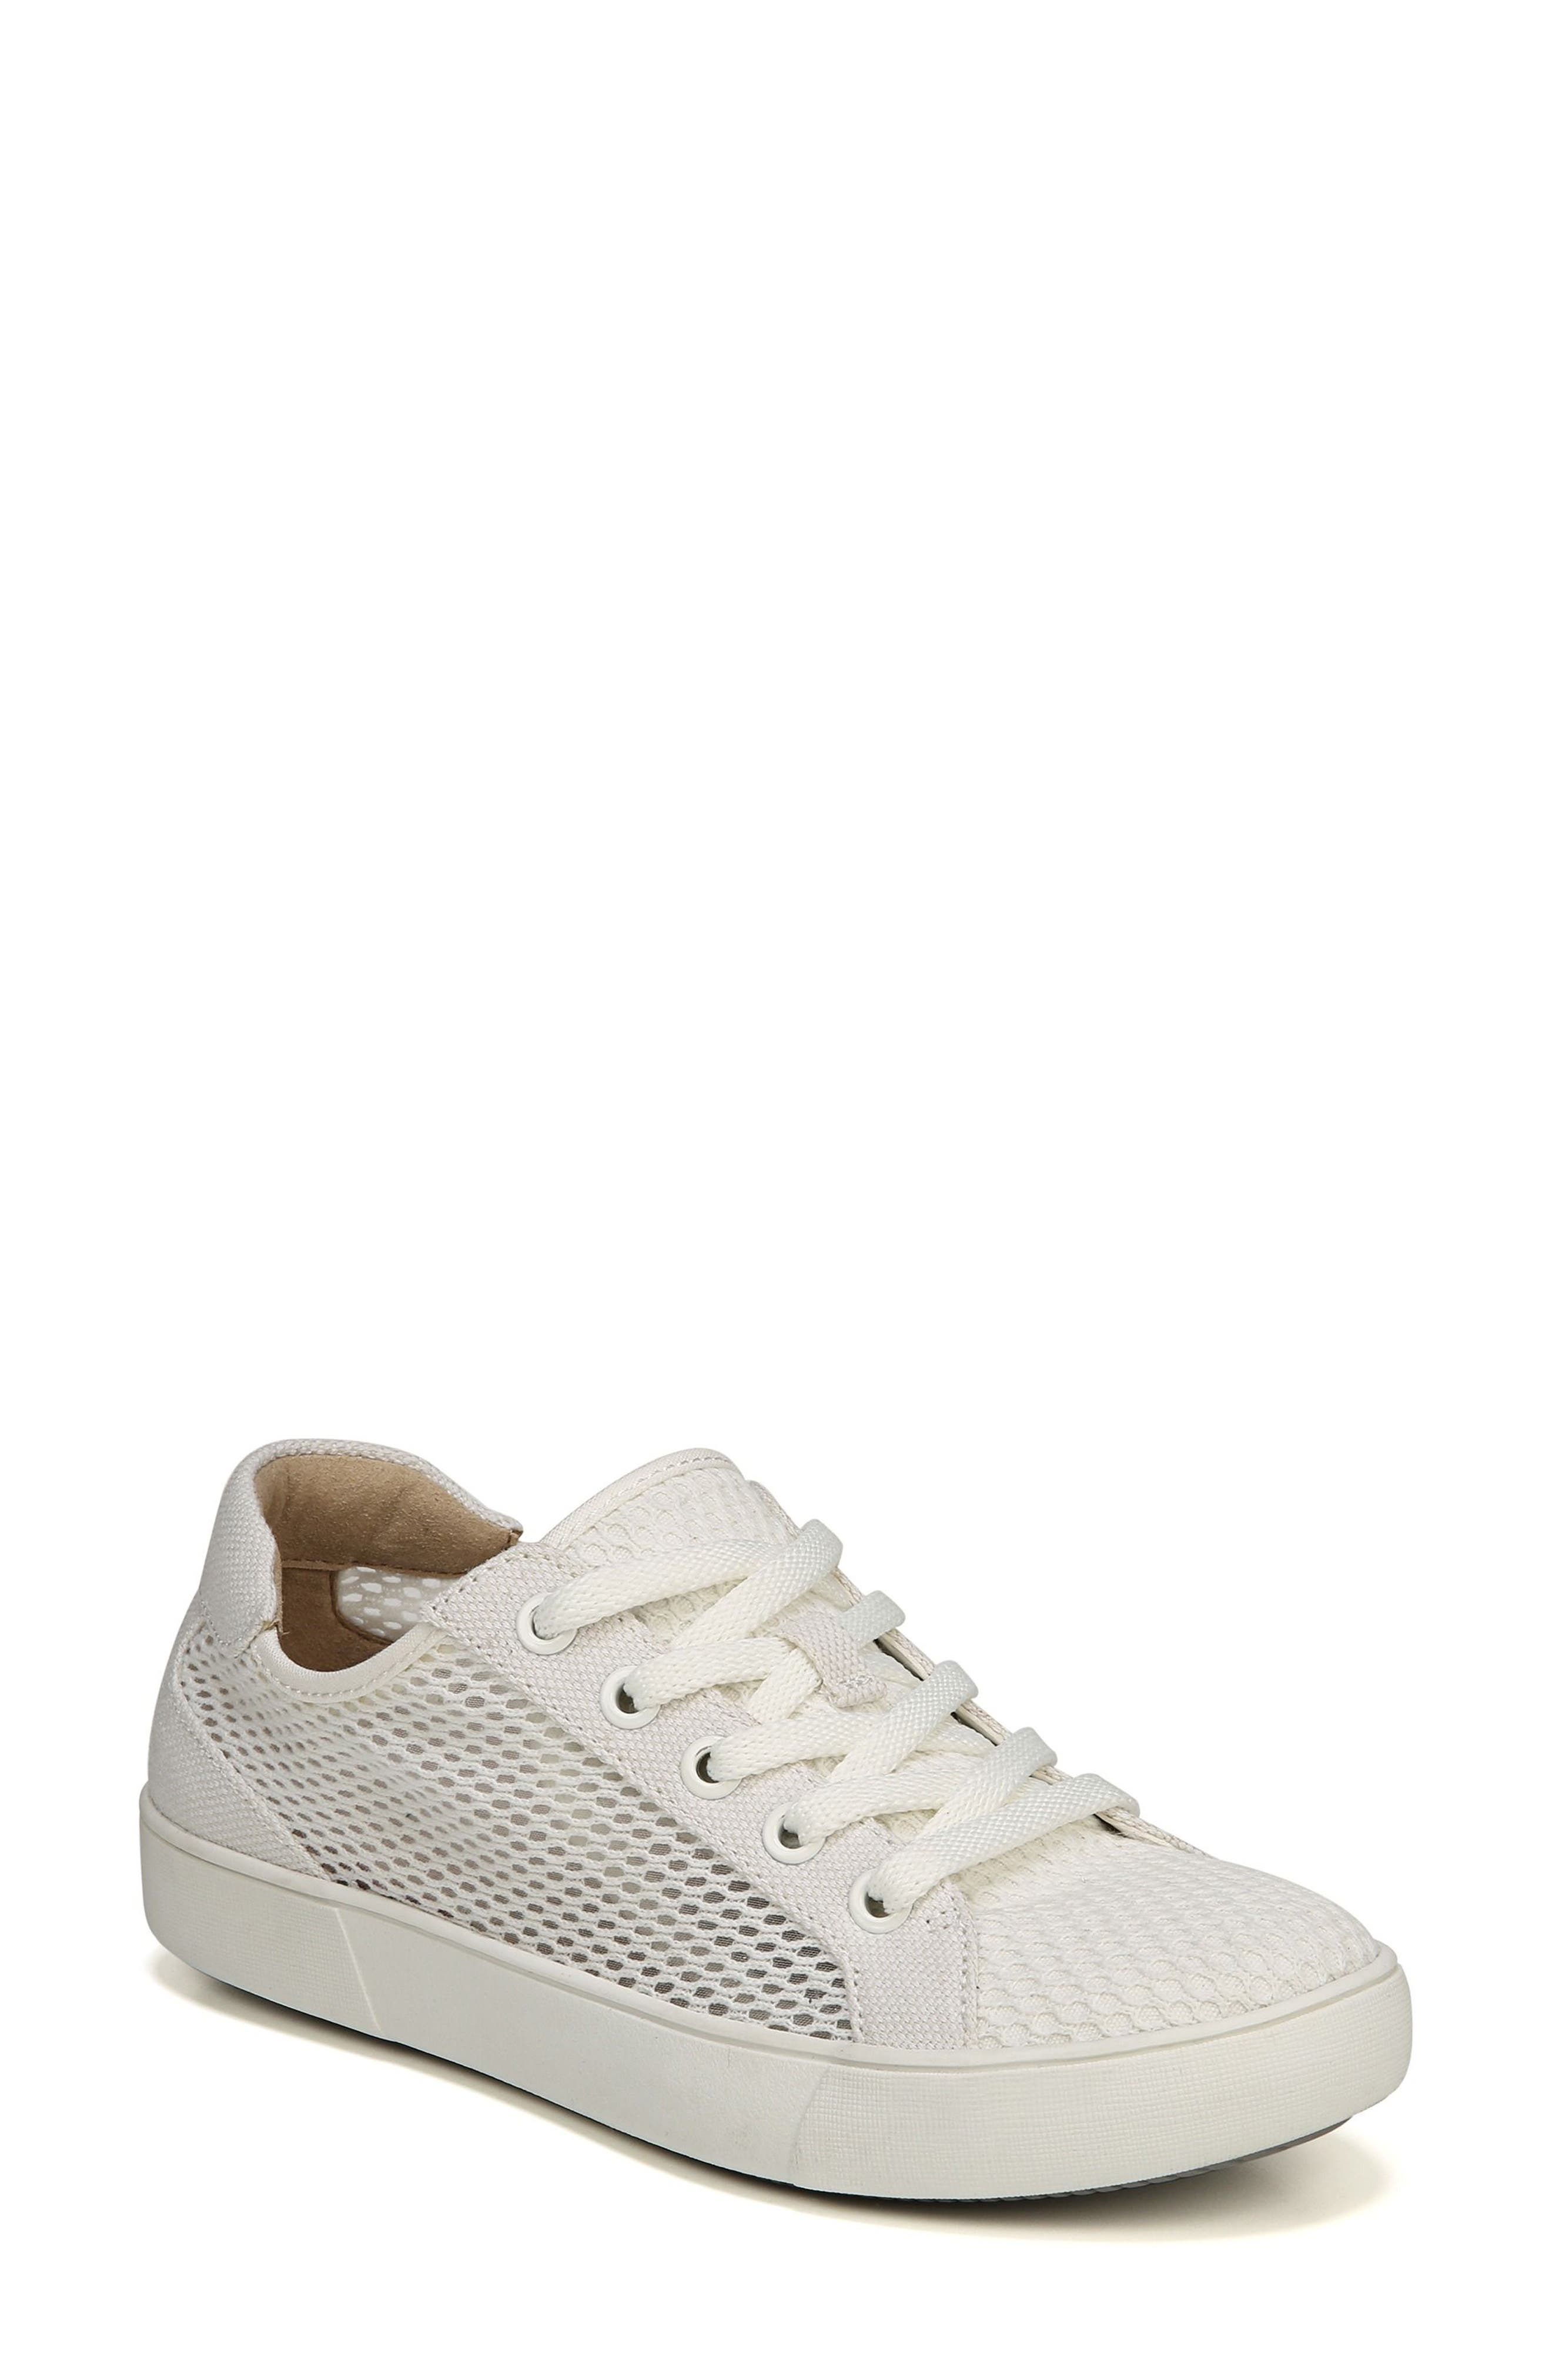 NATURALIZER Morrison III Perforated Sneaker, Main, color, WHITE FABRIC